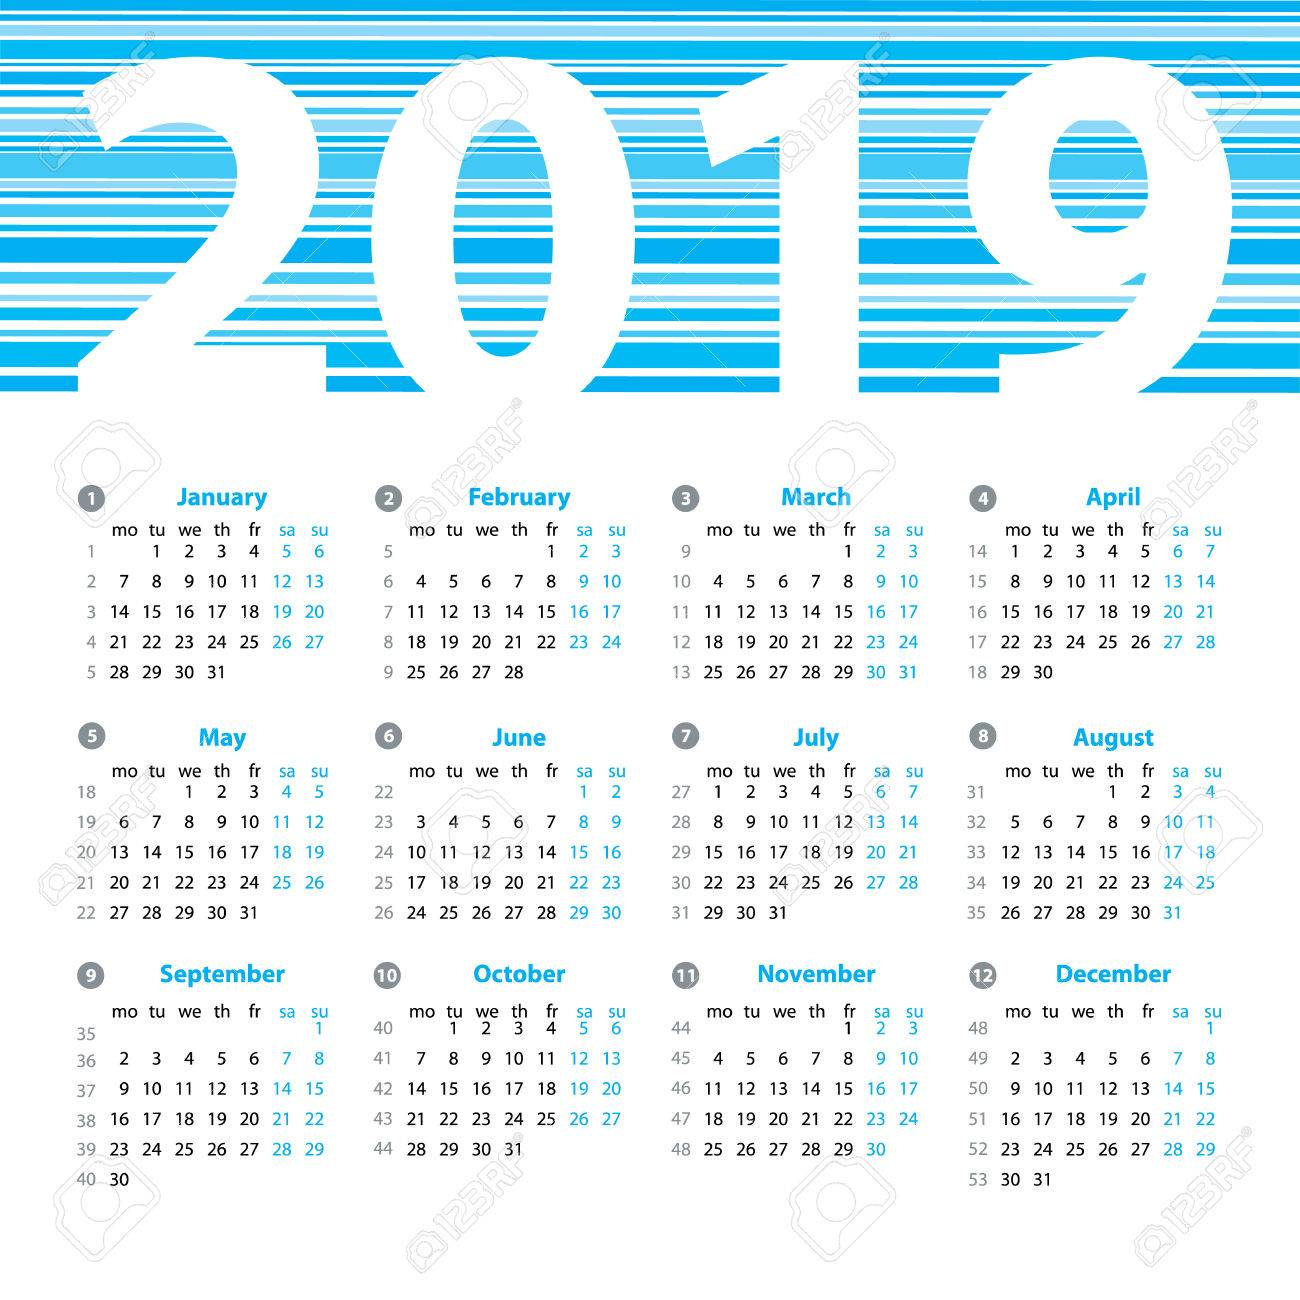 Calendar 2019 Year Vector Design Template With Week Numbers And